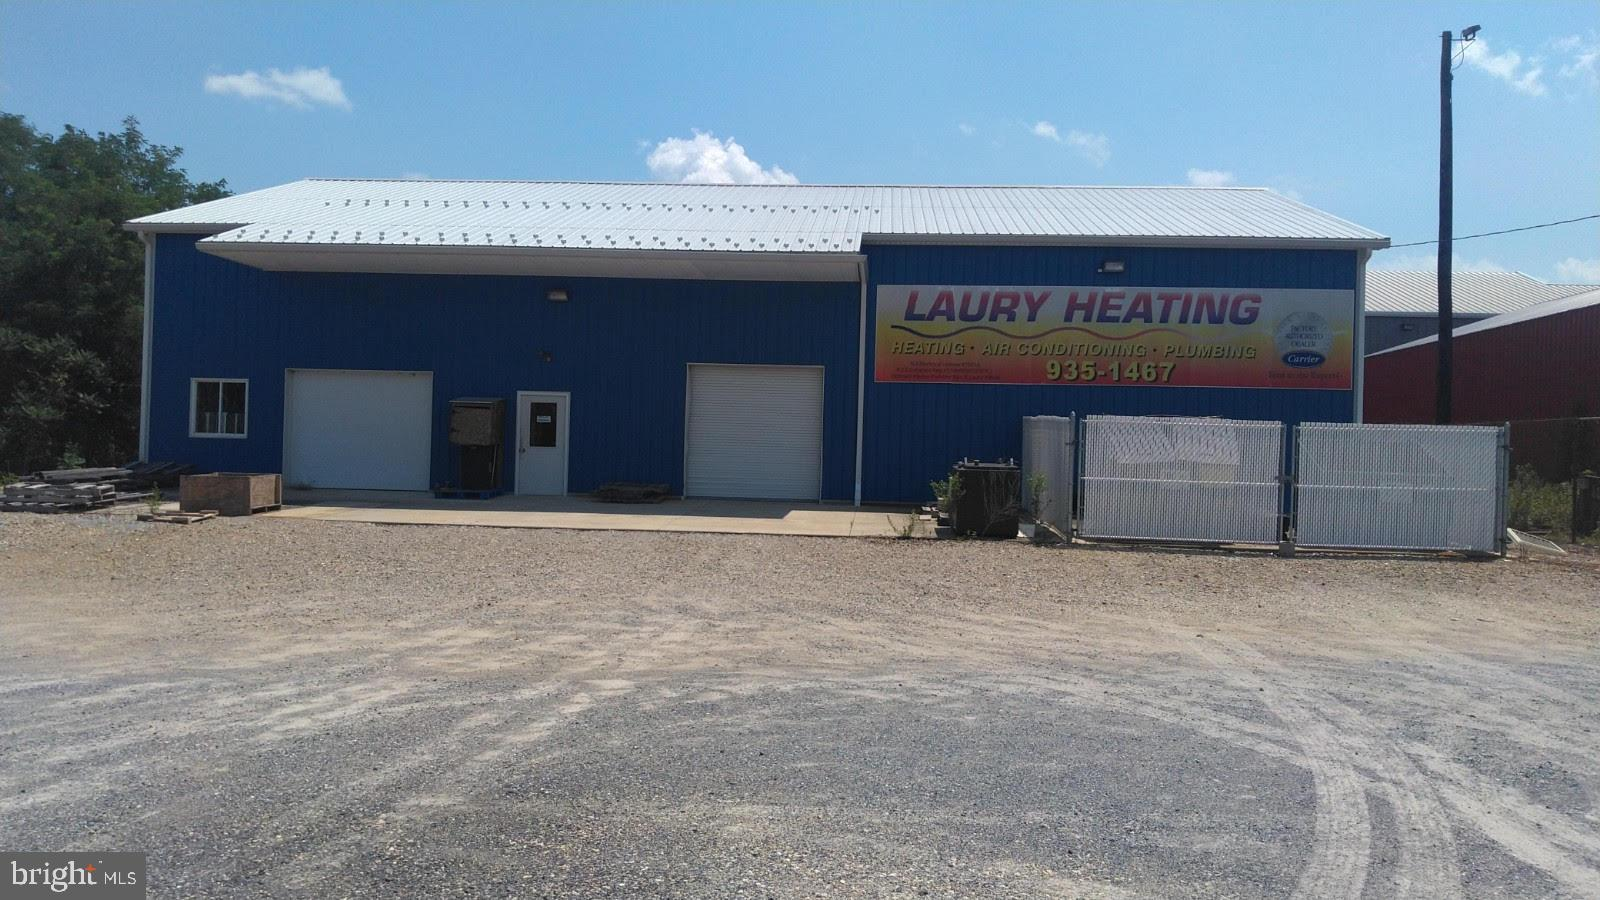 """Warehouse 50x80 with 200 amp electric service.  Built in 2008.  Shop within the warehouse 25x50 with 9x7 roll up door and man door 3' x 6'8"""" with HVAC full electric and lighting throughout.  Lower level open area 50x65 with 9' ceiling height from concrete floor with 9x7 roll up door and 3' x 6'8"""" man door.  Lighting throughout.  Upper Level 3700 sq ft open area with 7' ceiling height to bottom of free span truss bottom cord.  Sky light throughout, fully lighted.  Stair case from lower level.  Fork lift loading area for the second level within the 9x7 roll up door.  Concrete exterior apron across entire front, 20' deep.  Recycle and trash fenced in and gated area.  Parking and loading area more than ample.  Fenced in yard surrounding building.  Locations: 4.5 miles from entrance Rt 295 N; 5.1 miles from entrance to Delaware Memorial Bridge; 3.1 miles from entrance to Salem Port Authority."""